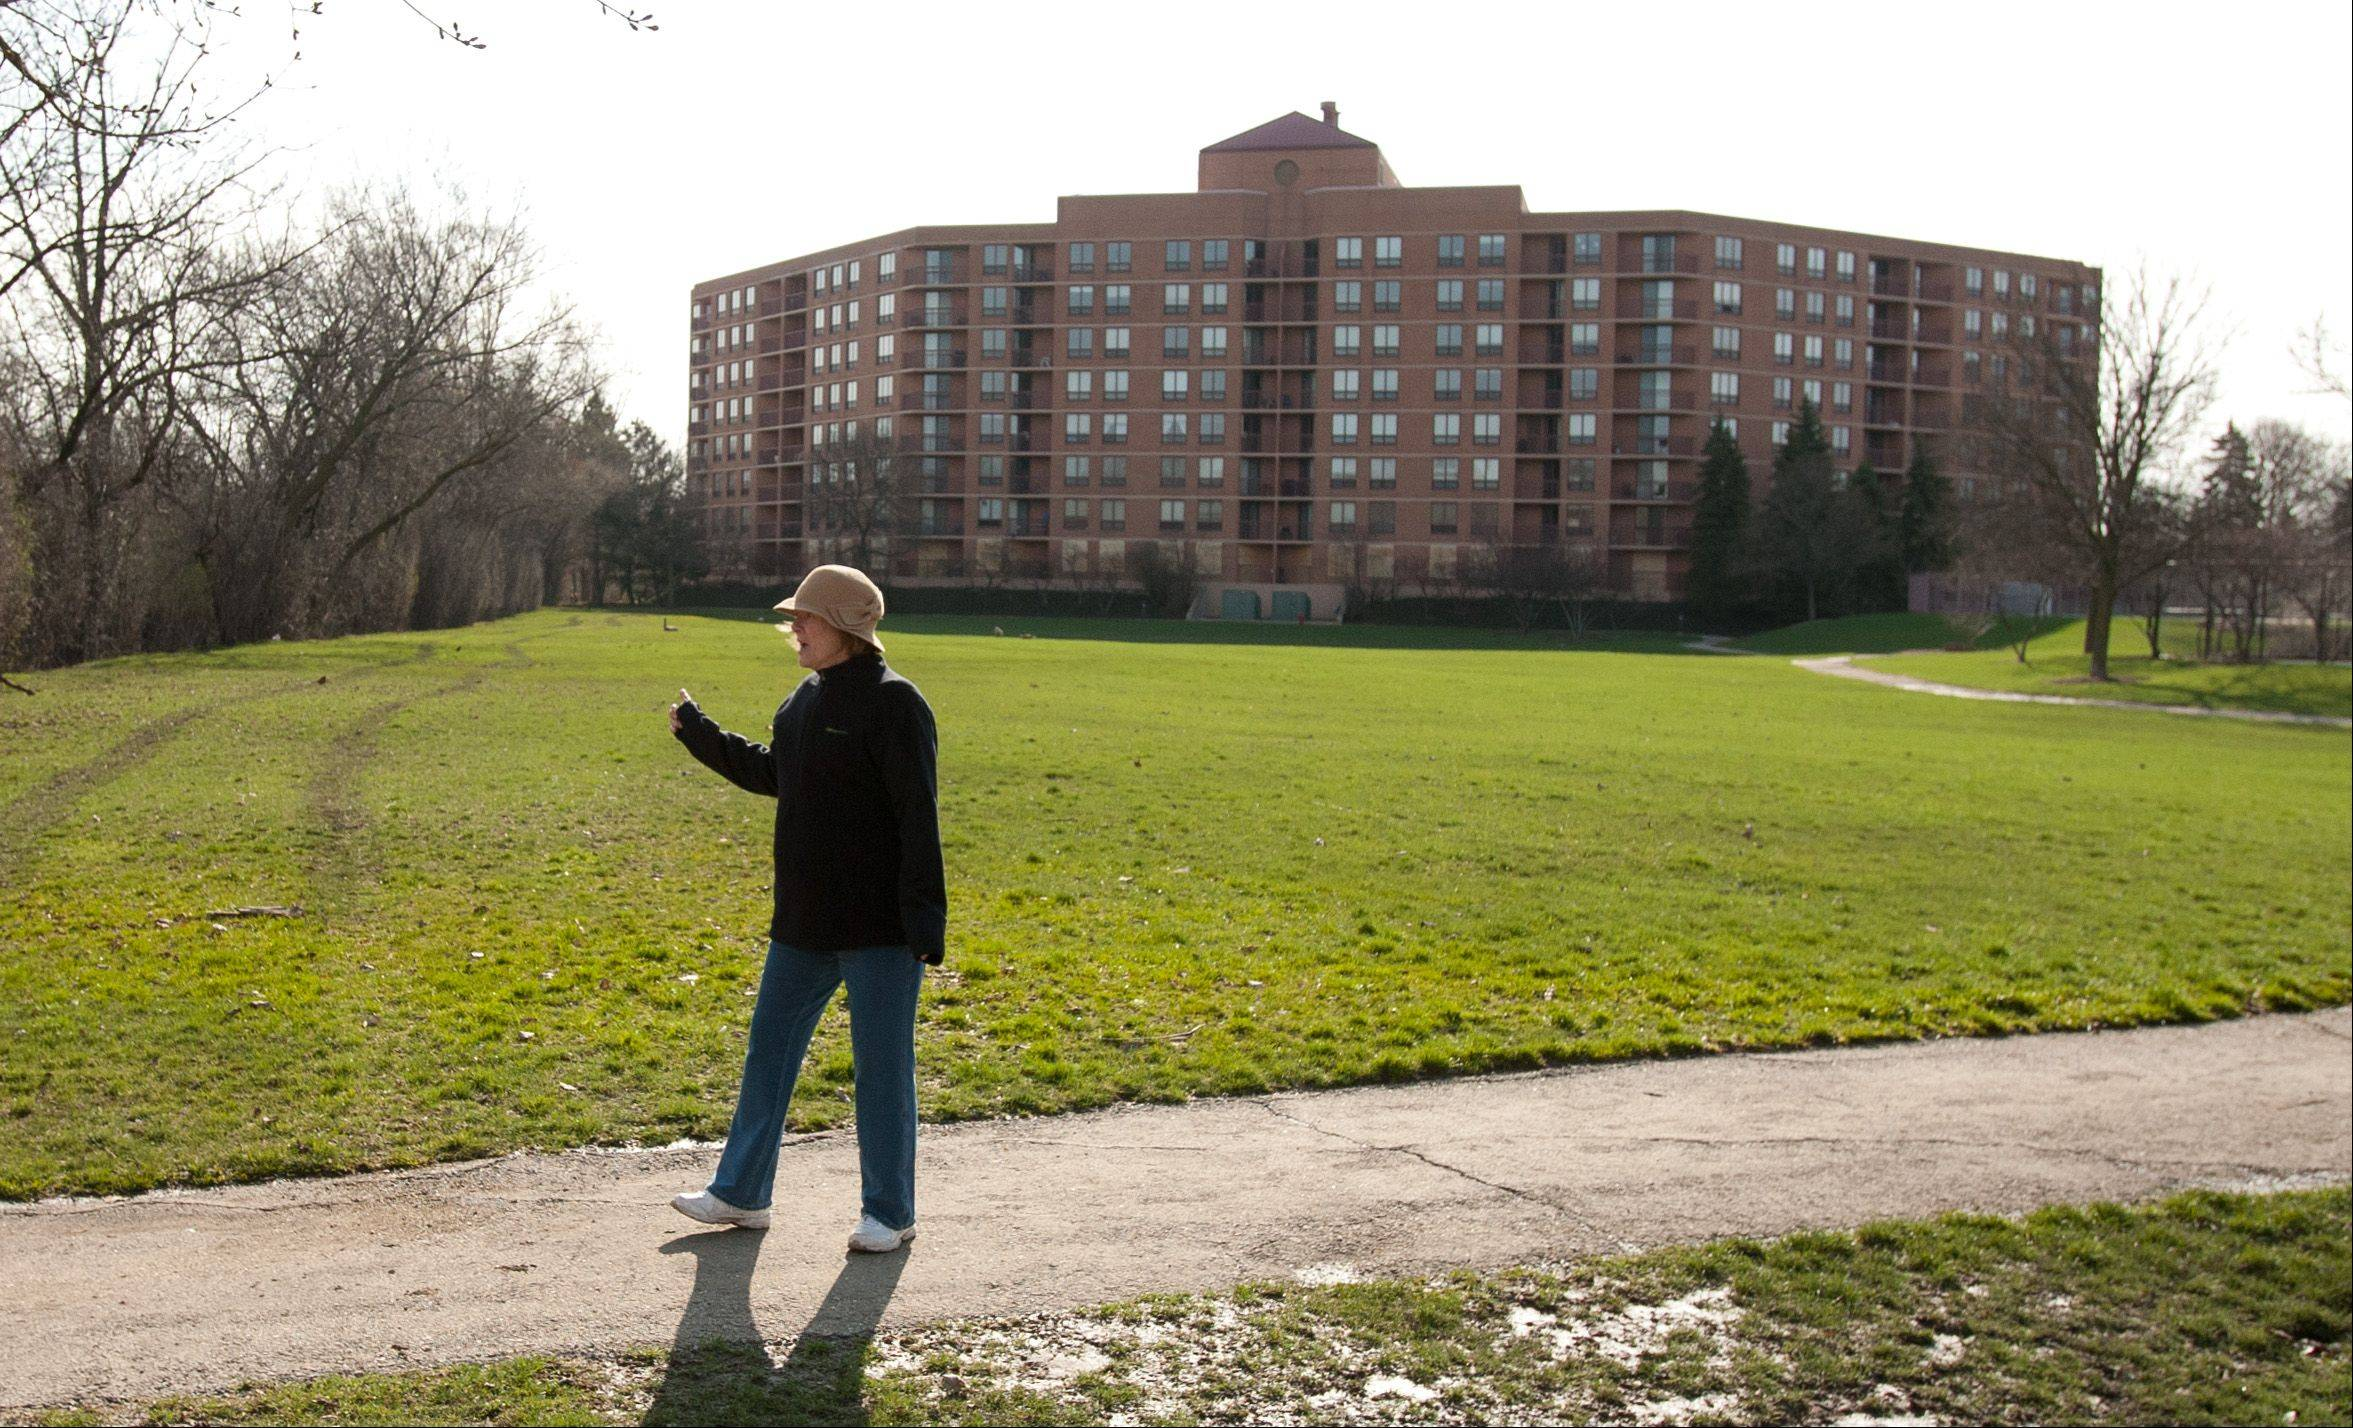 Barbara Joan Boudette points out the height of water in front of one of the Towers of Four Lakes buildings in Lisle. All first-floor windows are boarded up in an effort to prevent looting.